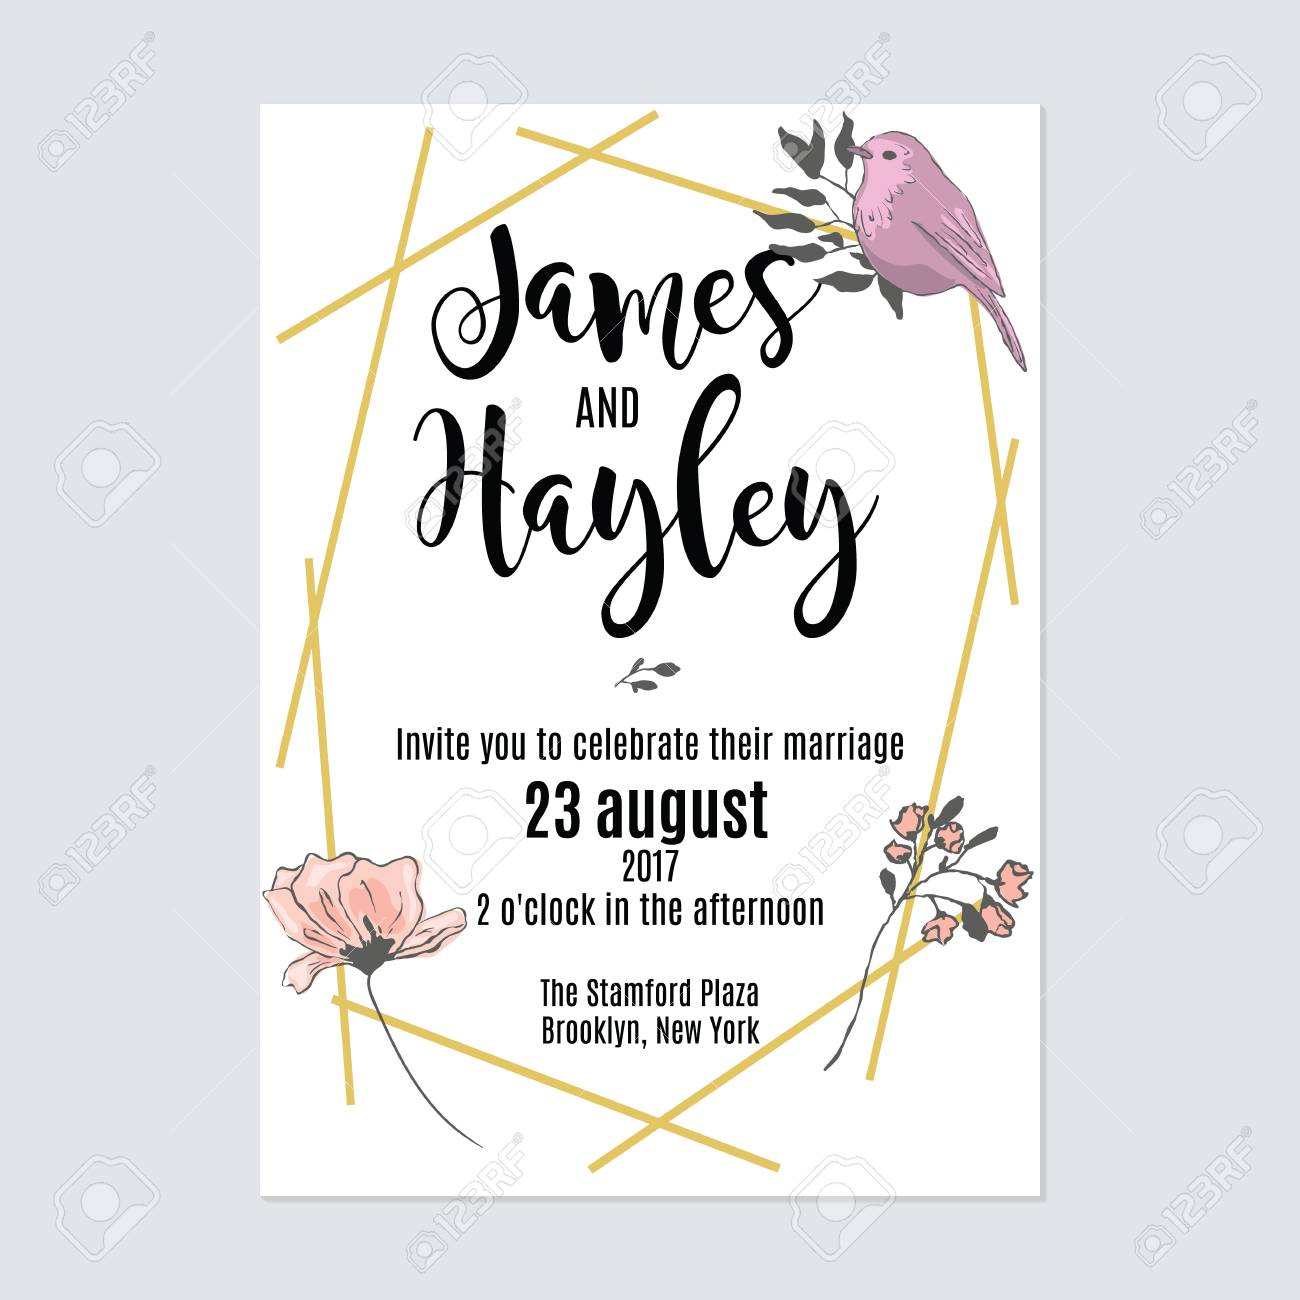 Gold Geometric Lines Floral Wedding Invitation Card Template